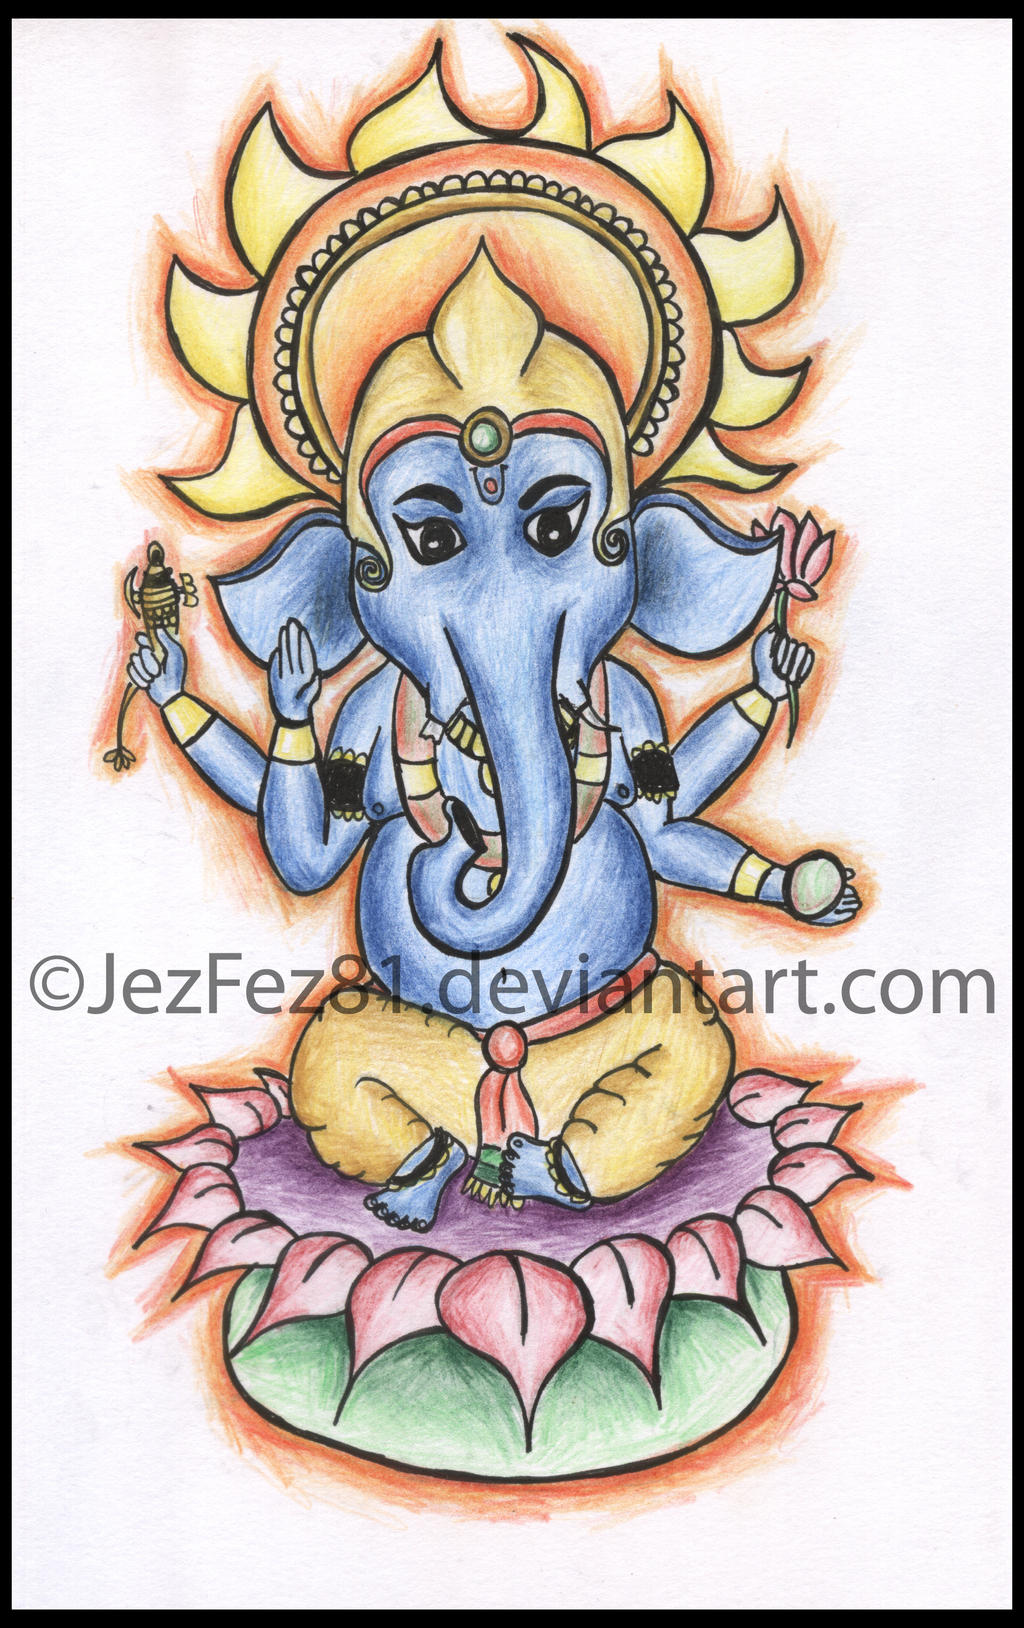 ganesh tattoo my style by jezzy fezzy on deviantart. Black Bedroom Furniture Sets. Home Design Ideas